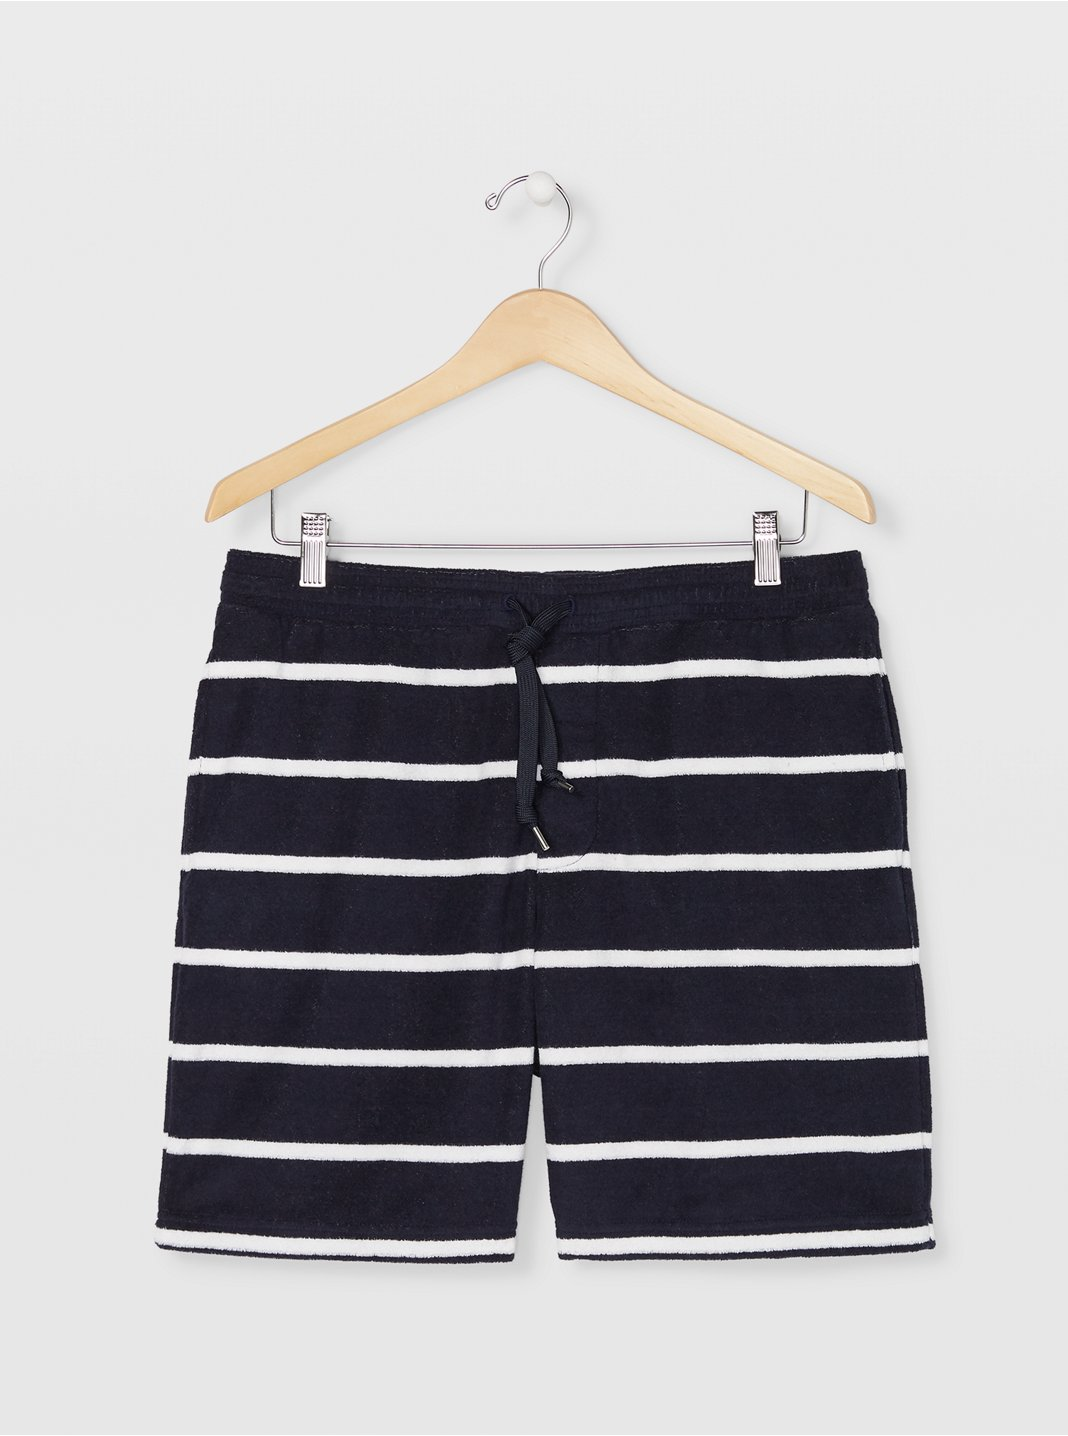 Terry Toweling Shorts